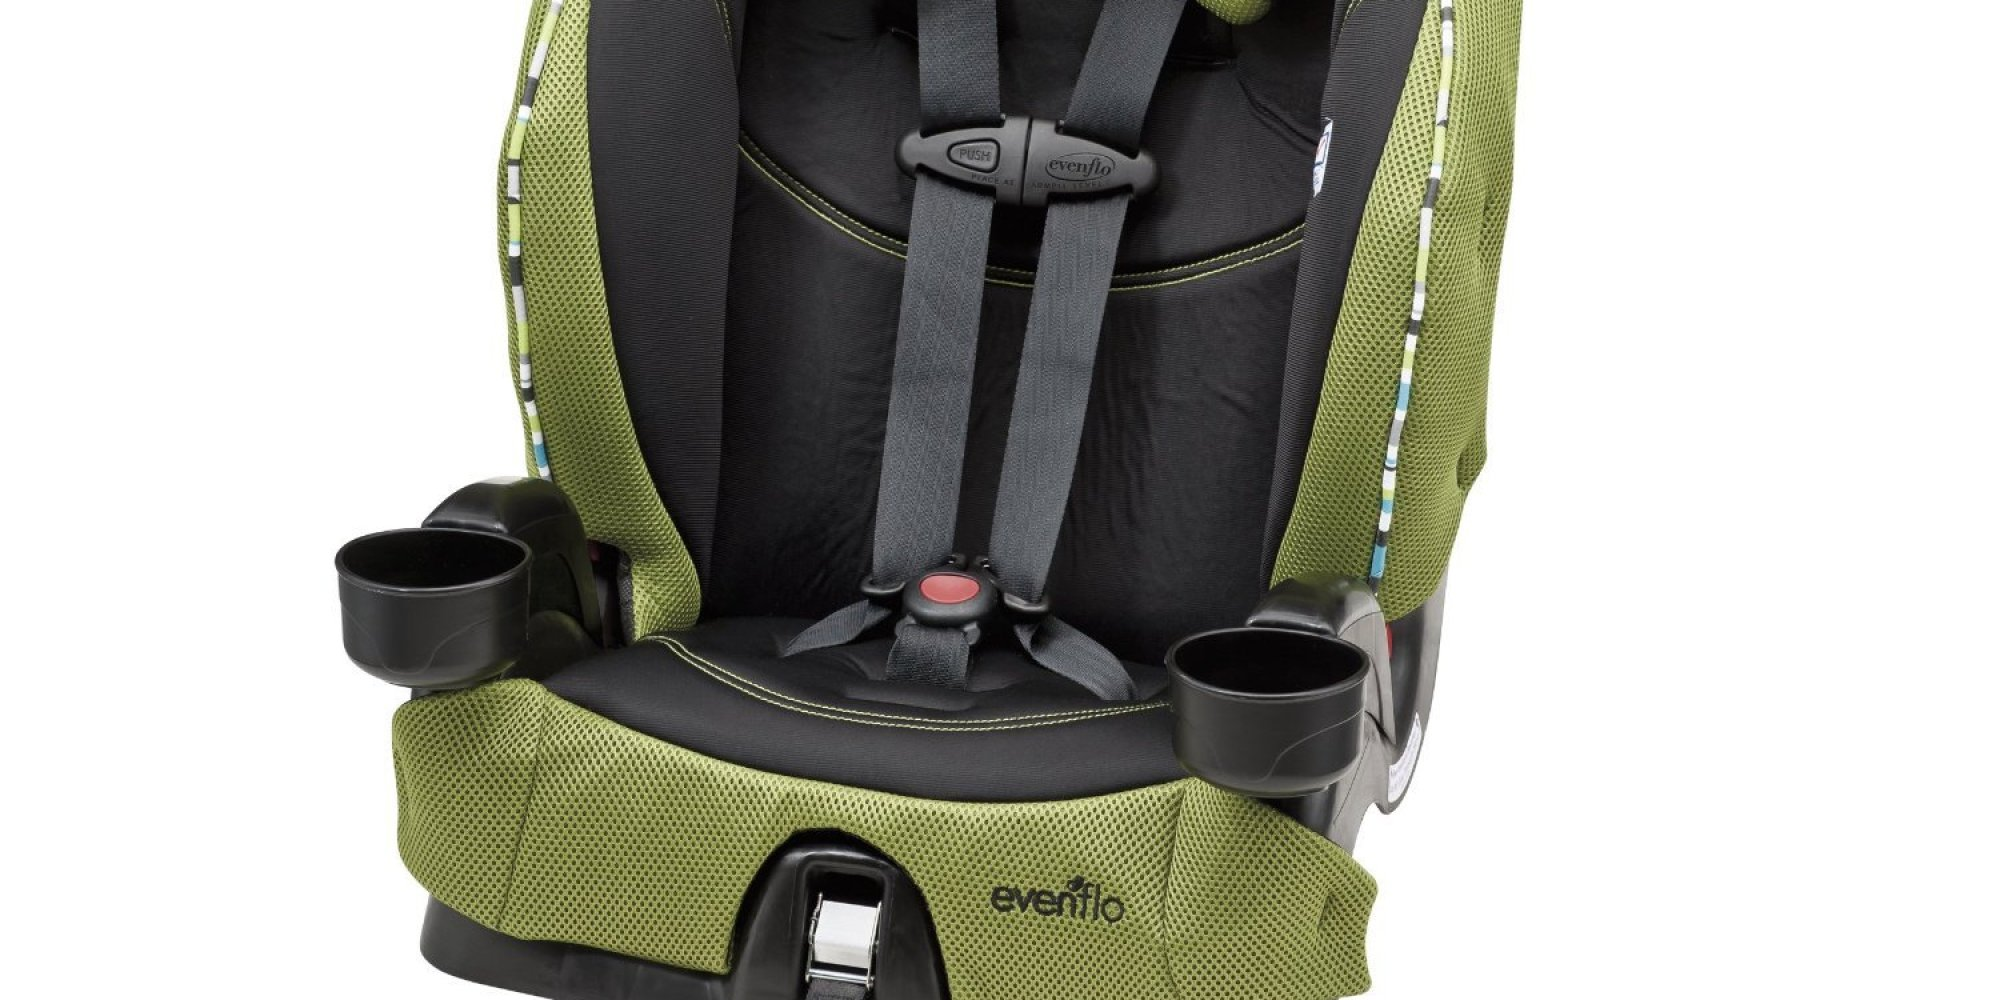 evenflo recalls 1 3 million child seat buckles huffpost. Black Bedroom Furniture Sets. Home Design Ideas